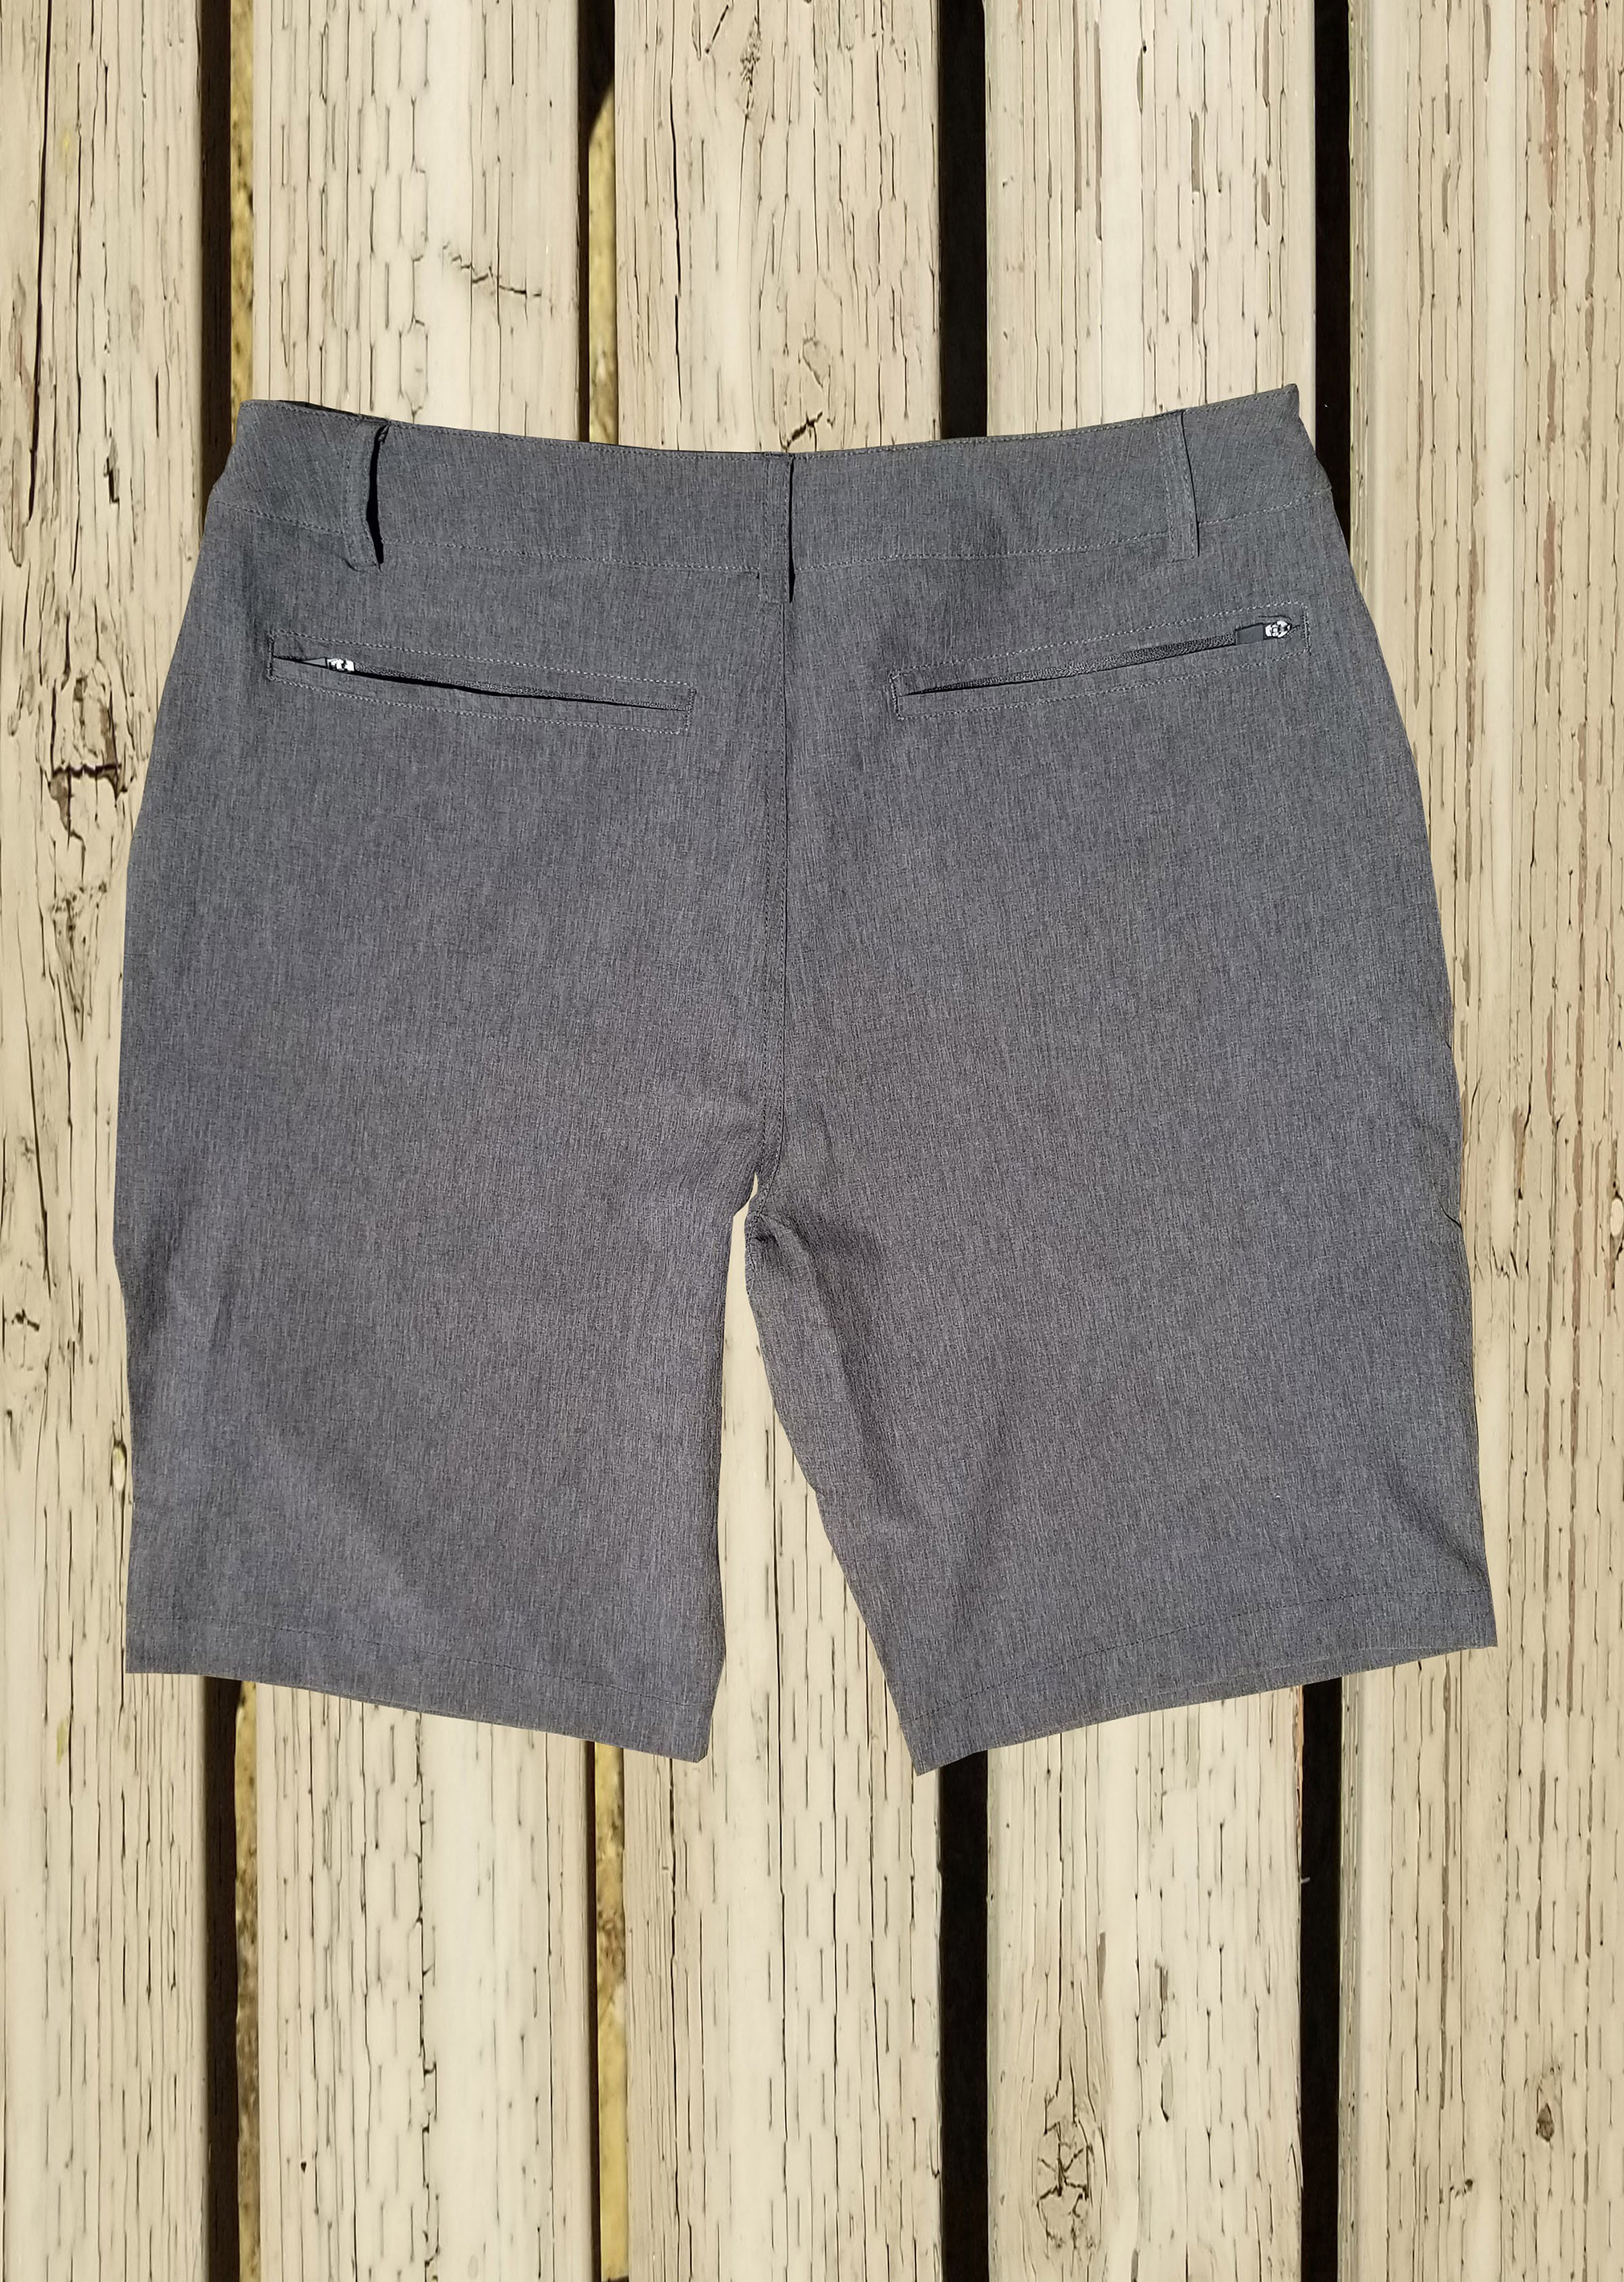 Sun Moon Truth Hybrid 24 Shorts - Grey Mens Shorts Back View